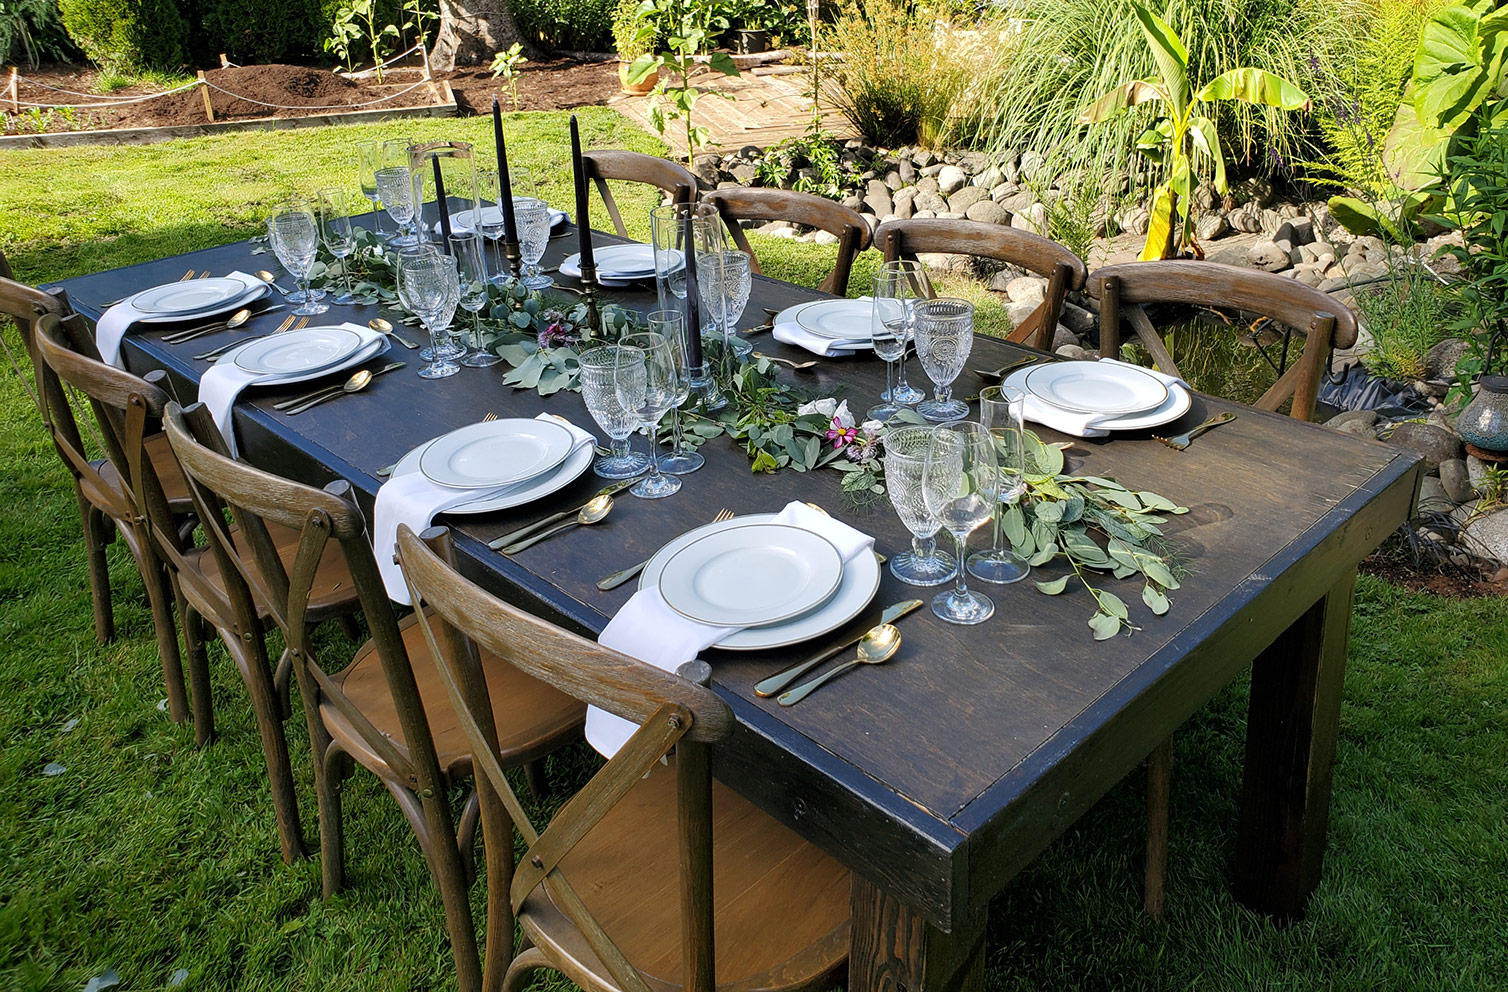 Incorporating A Harvest Table For Your Backyard BBQ Or Cocktail Party